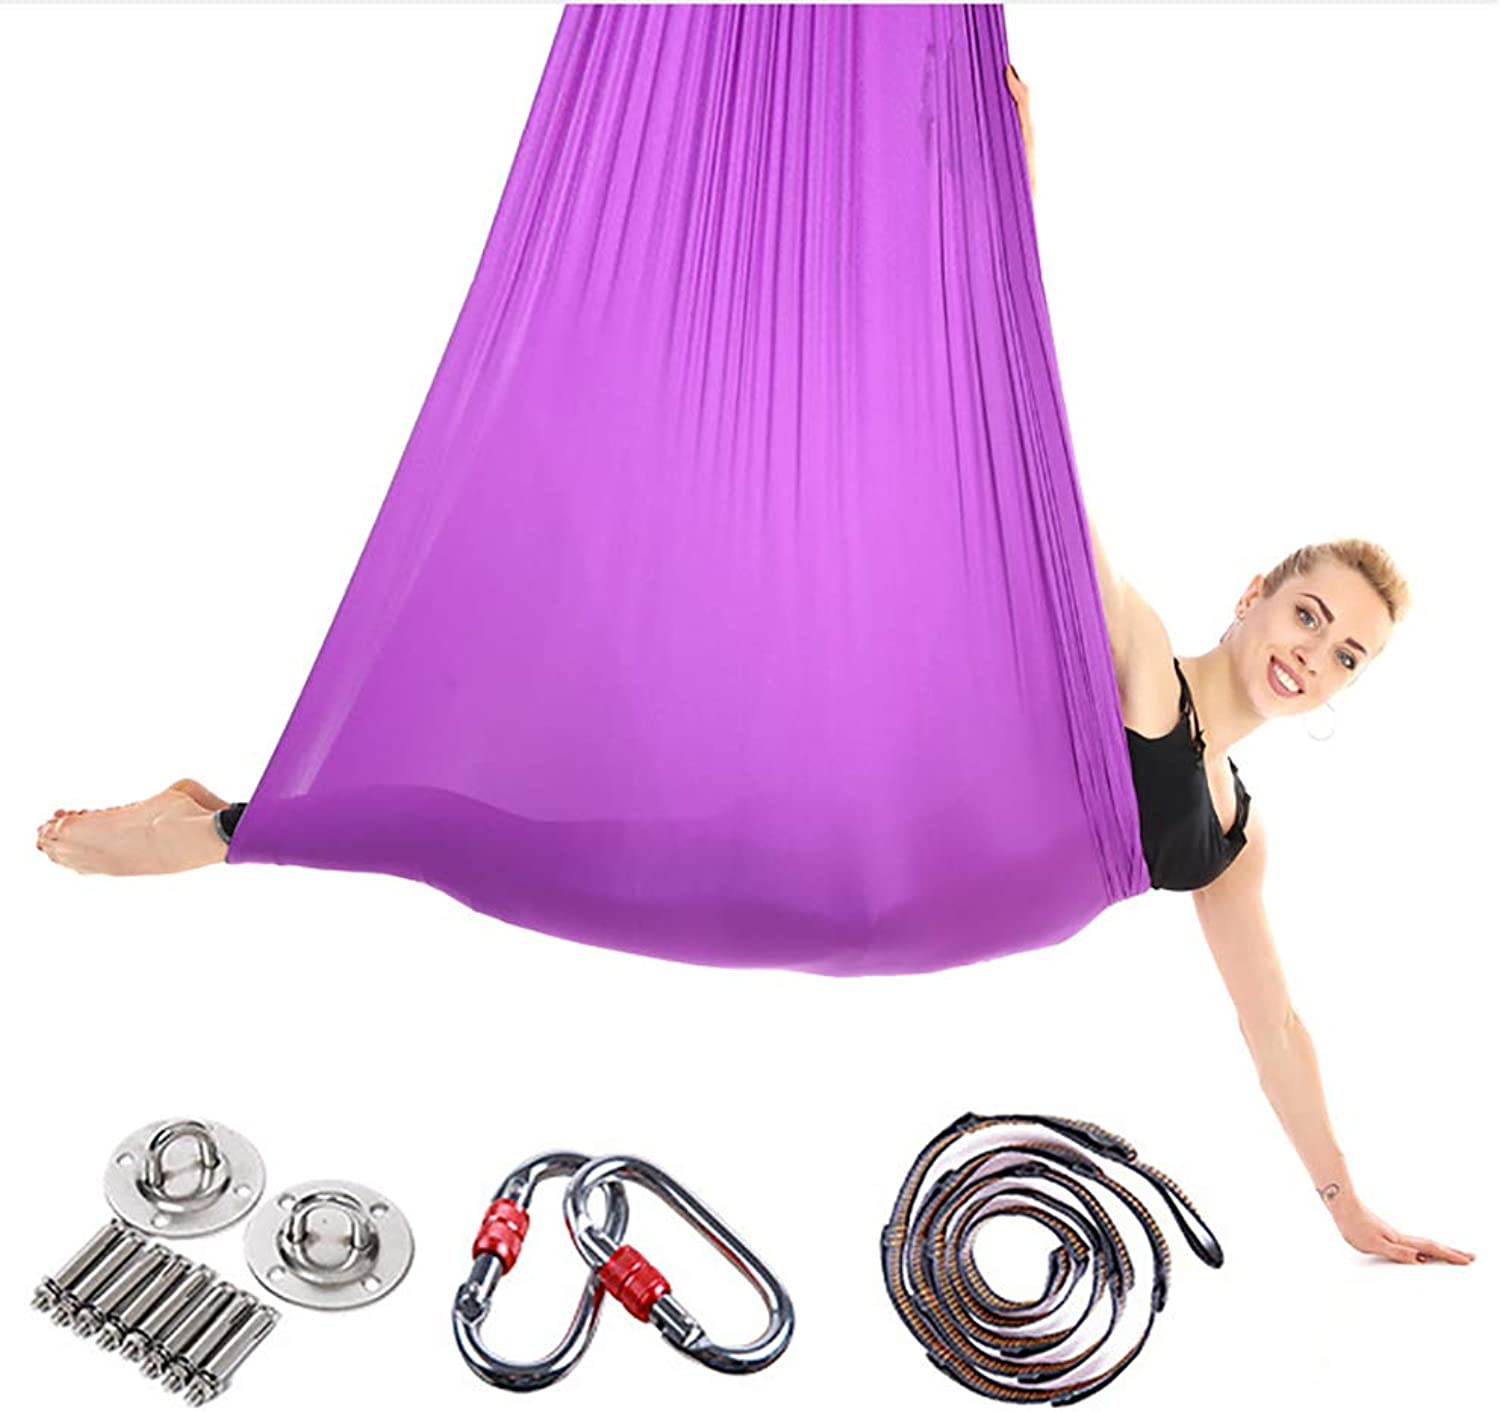 Aerial Yoga Hammock, AntiGravity Yoga Workout Swing, Pilates Yoga Exercise Sets Safe Deluxe with Extension Belt,Purple1